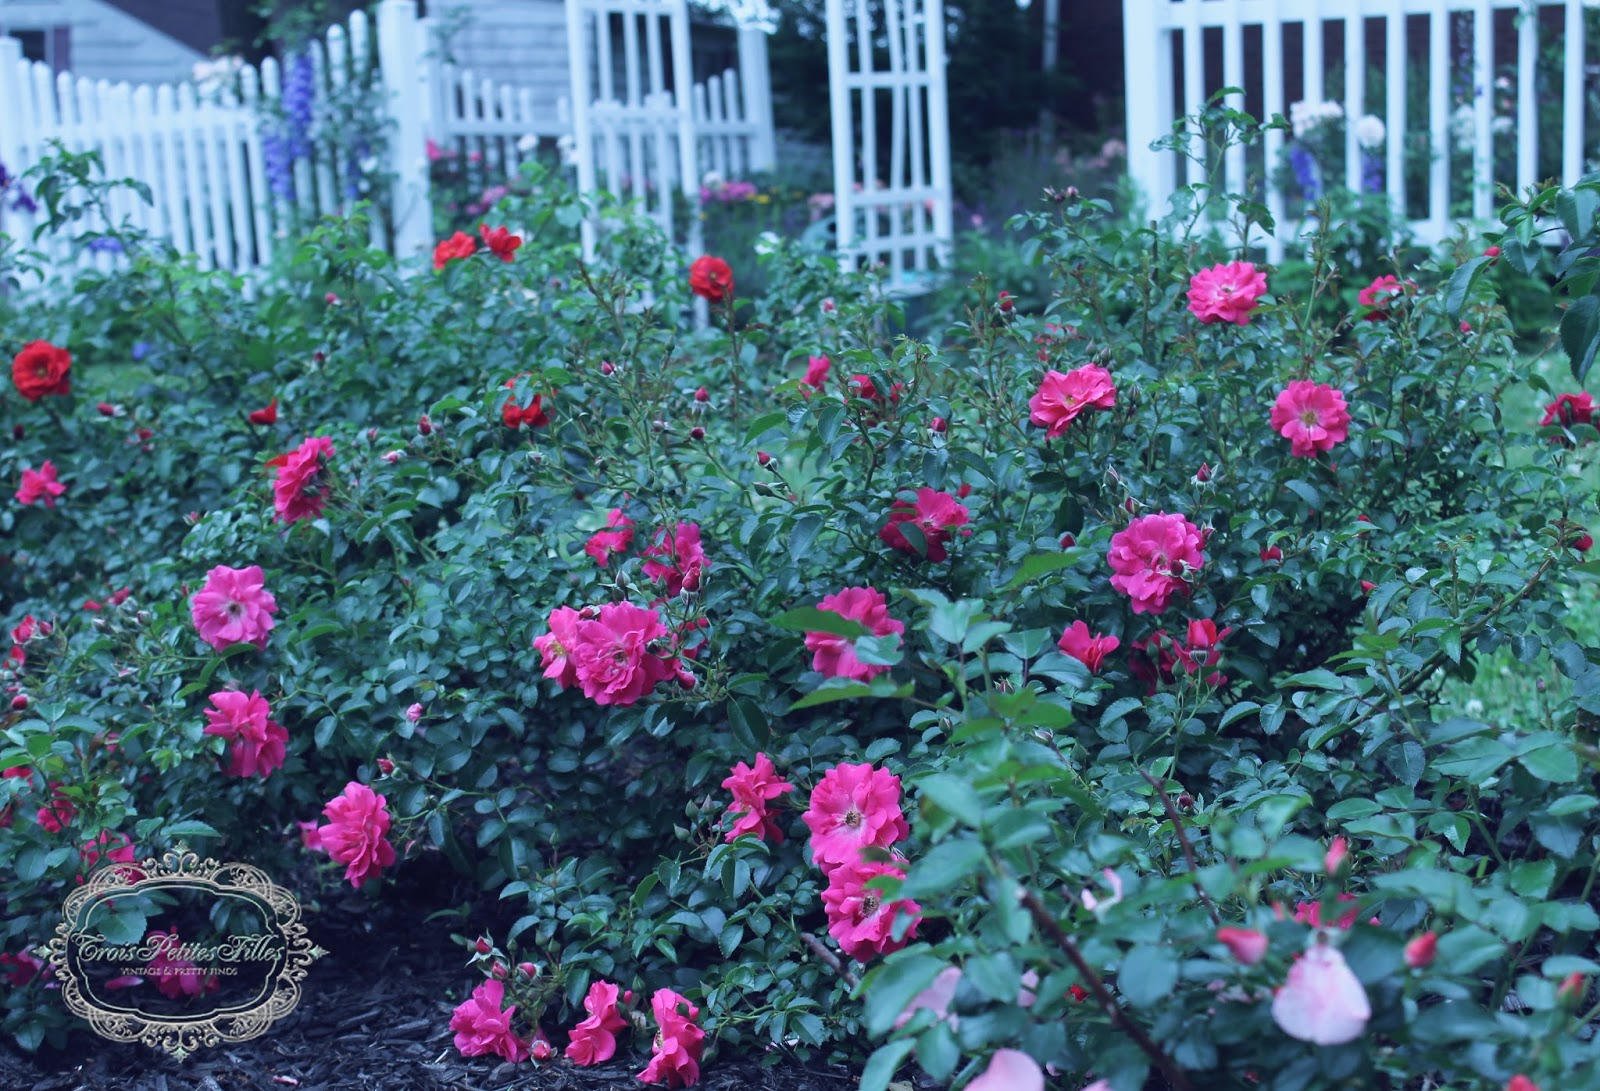 Trois petites filles flower carpet roses i dont think i have ever shown you my flower carpet roses before they usually are the last roses to bloom dhlflorist Image collections